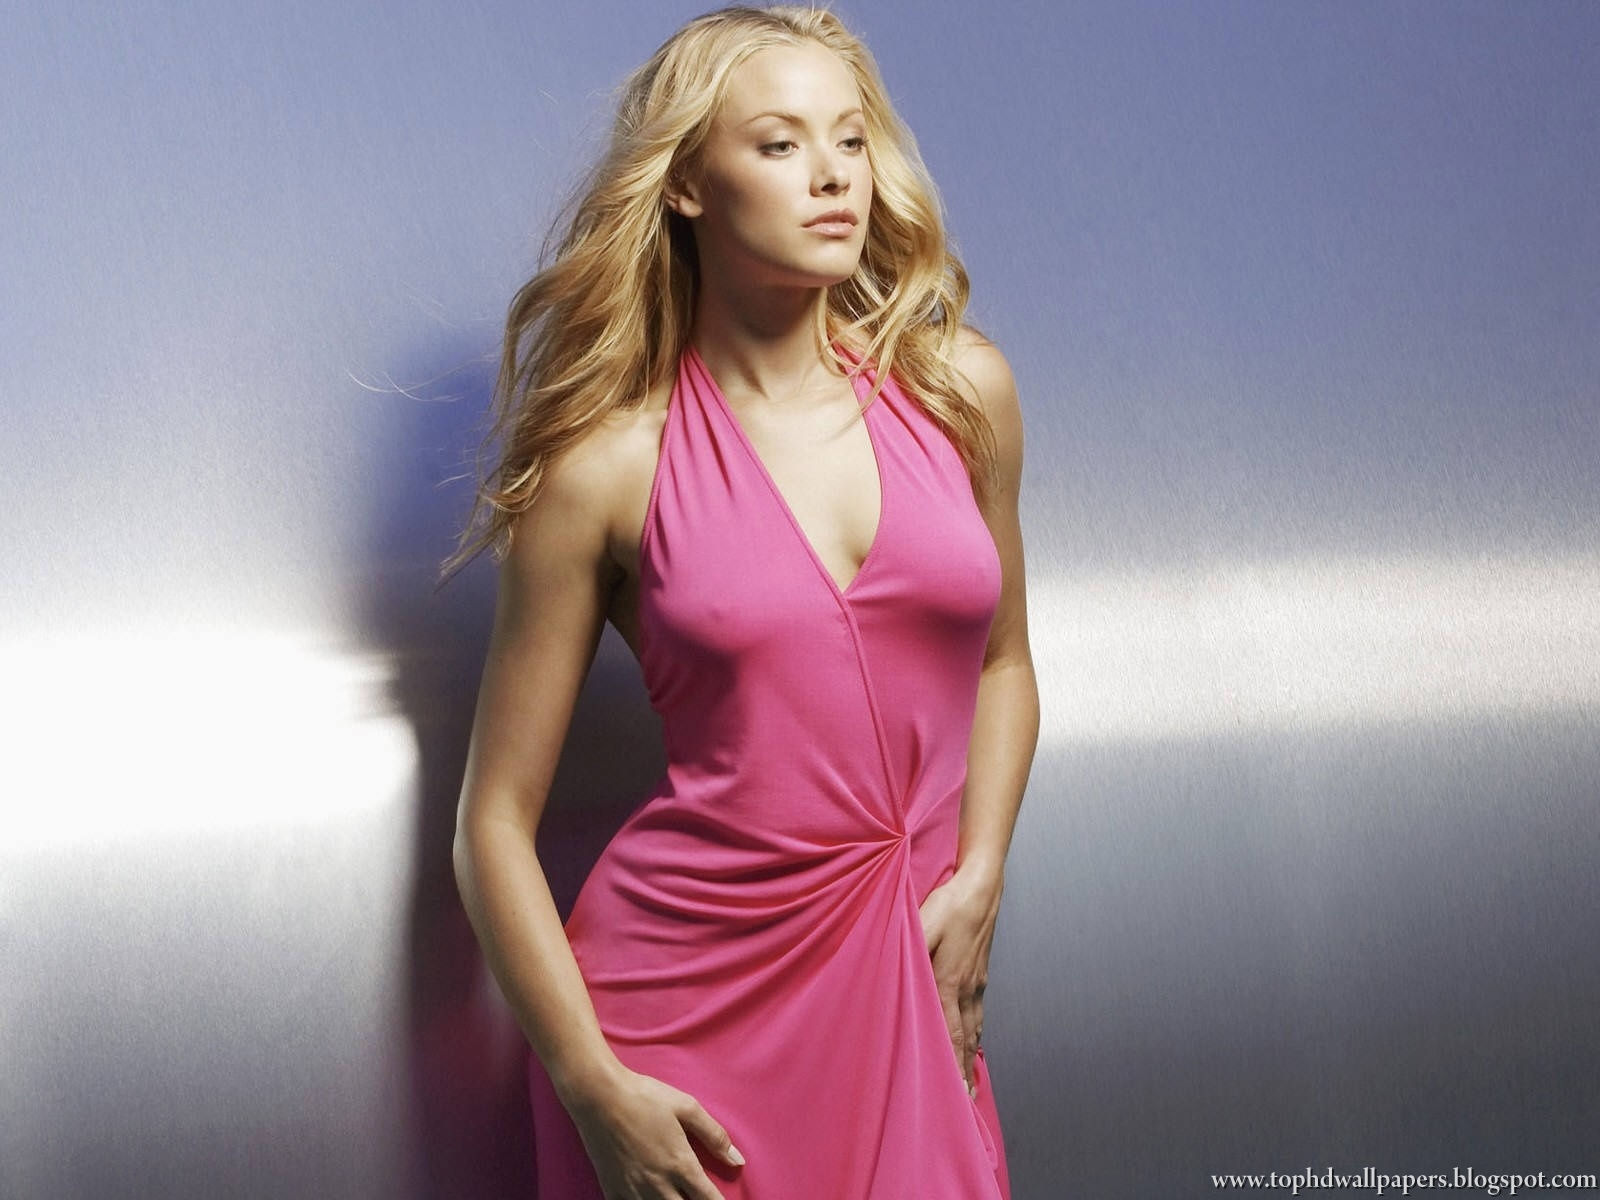 Hot kristanna loken celebrities high resolution wallpapers - High resolution wallpaper celebrity ...